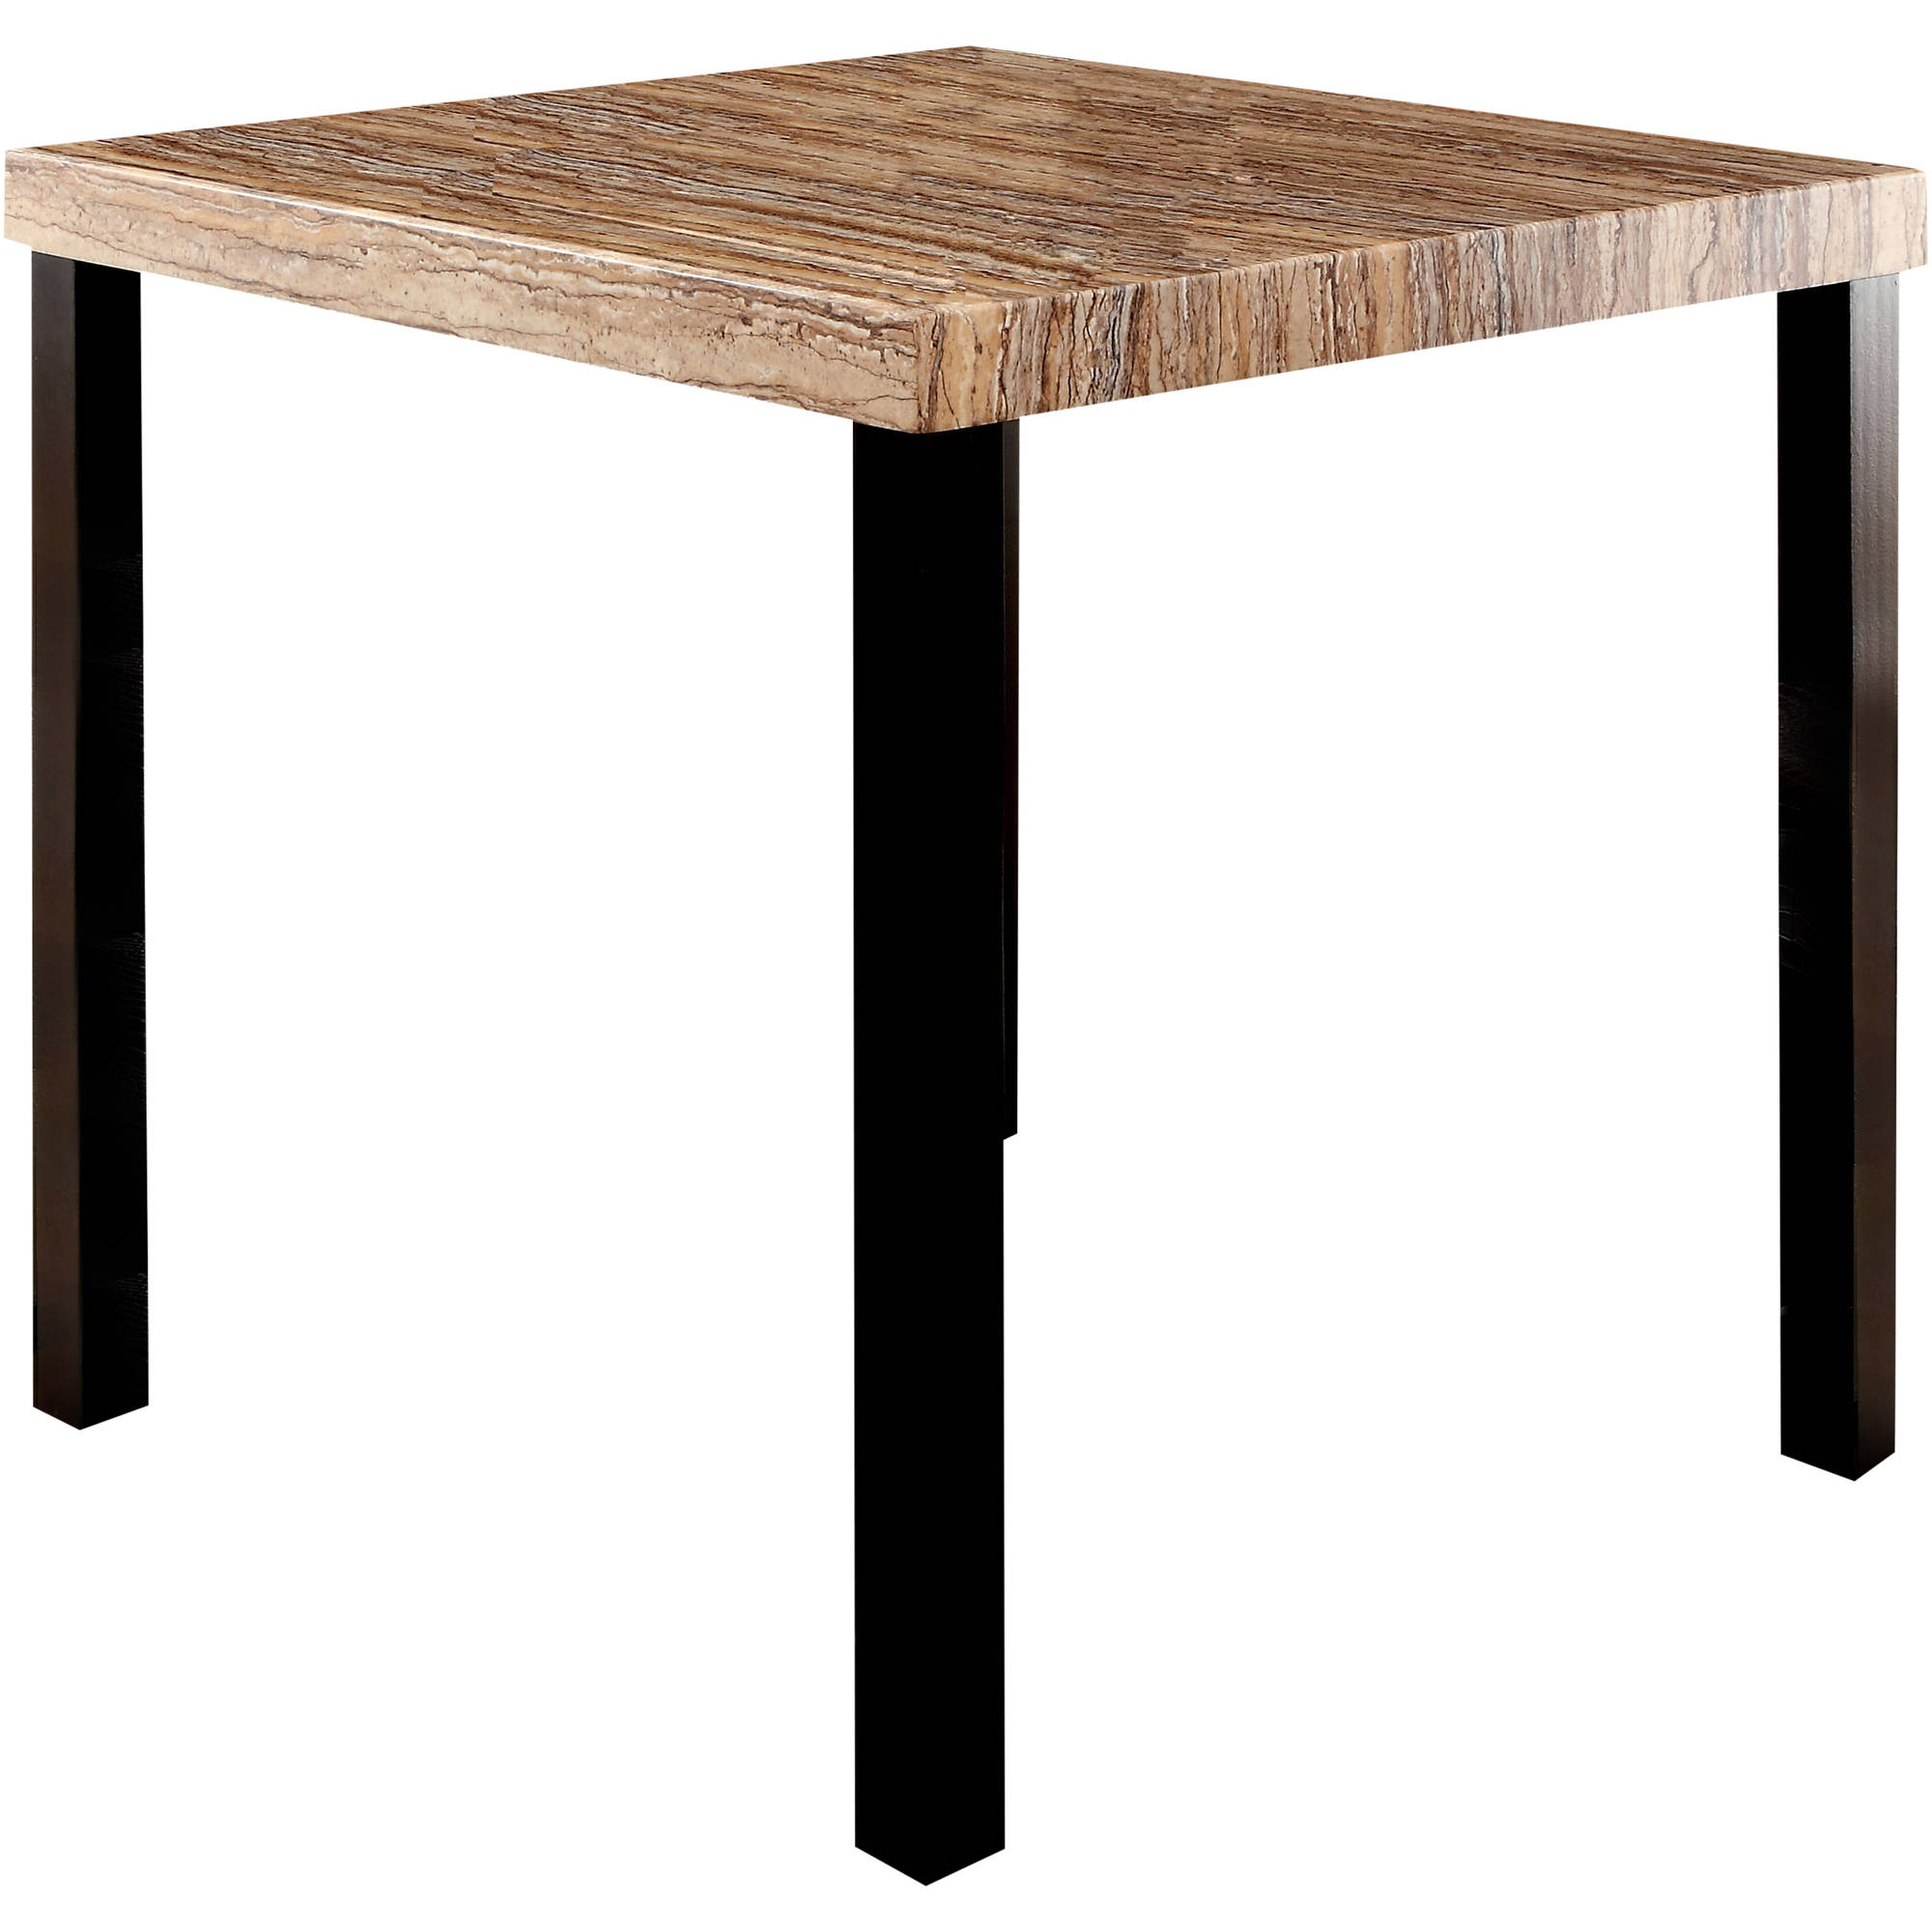 Furniture of America Malcon Contemporary Counter Height Dining Table, Black